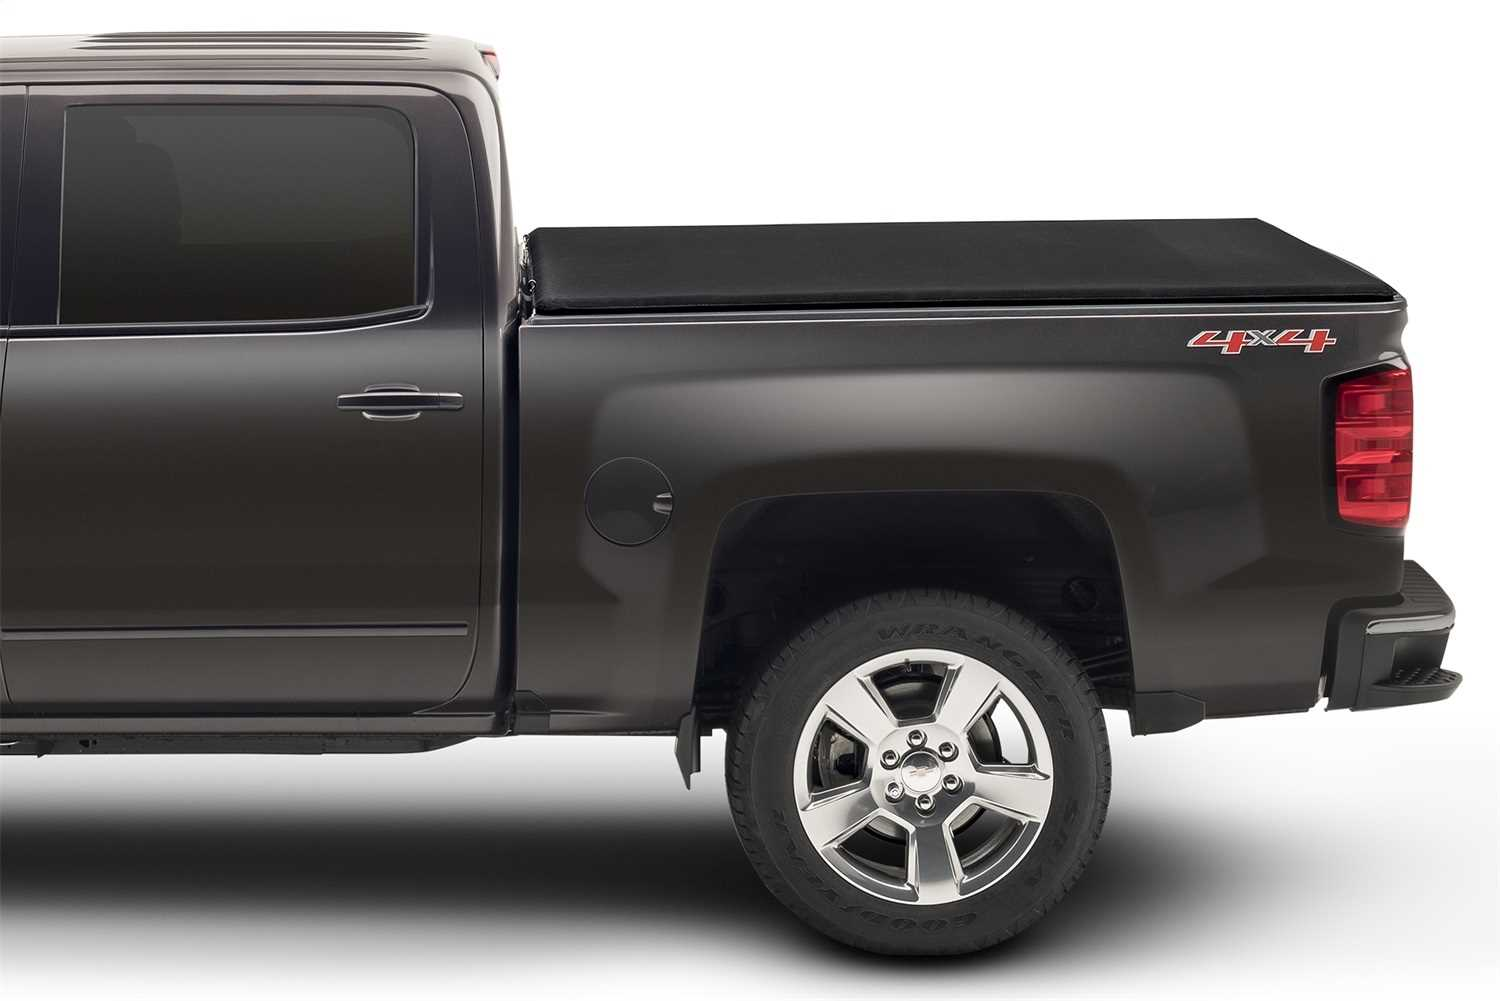 94905 Extang Trifecta Signature 2.0 Tonneau Cover